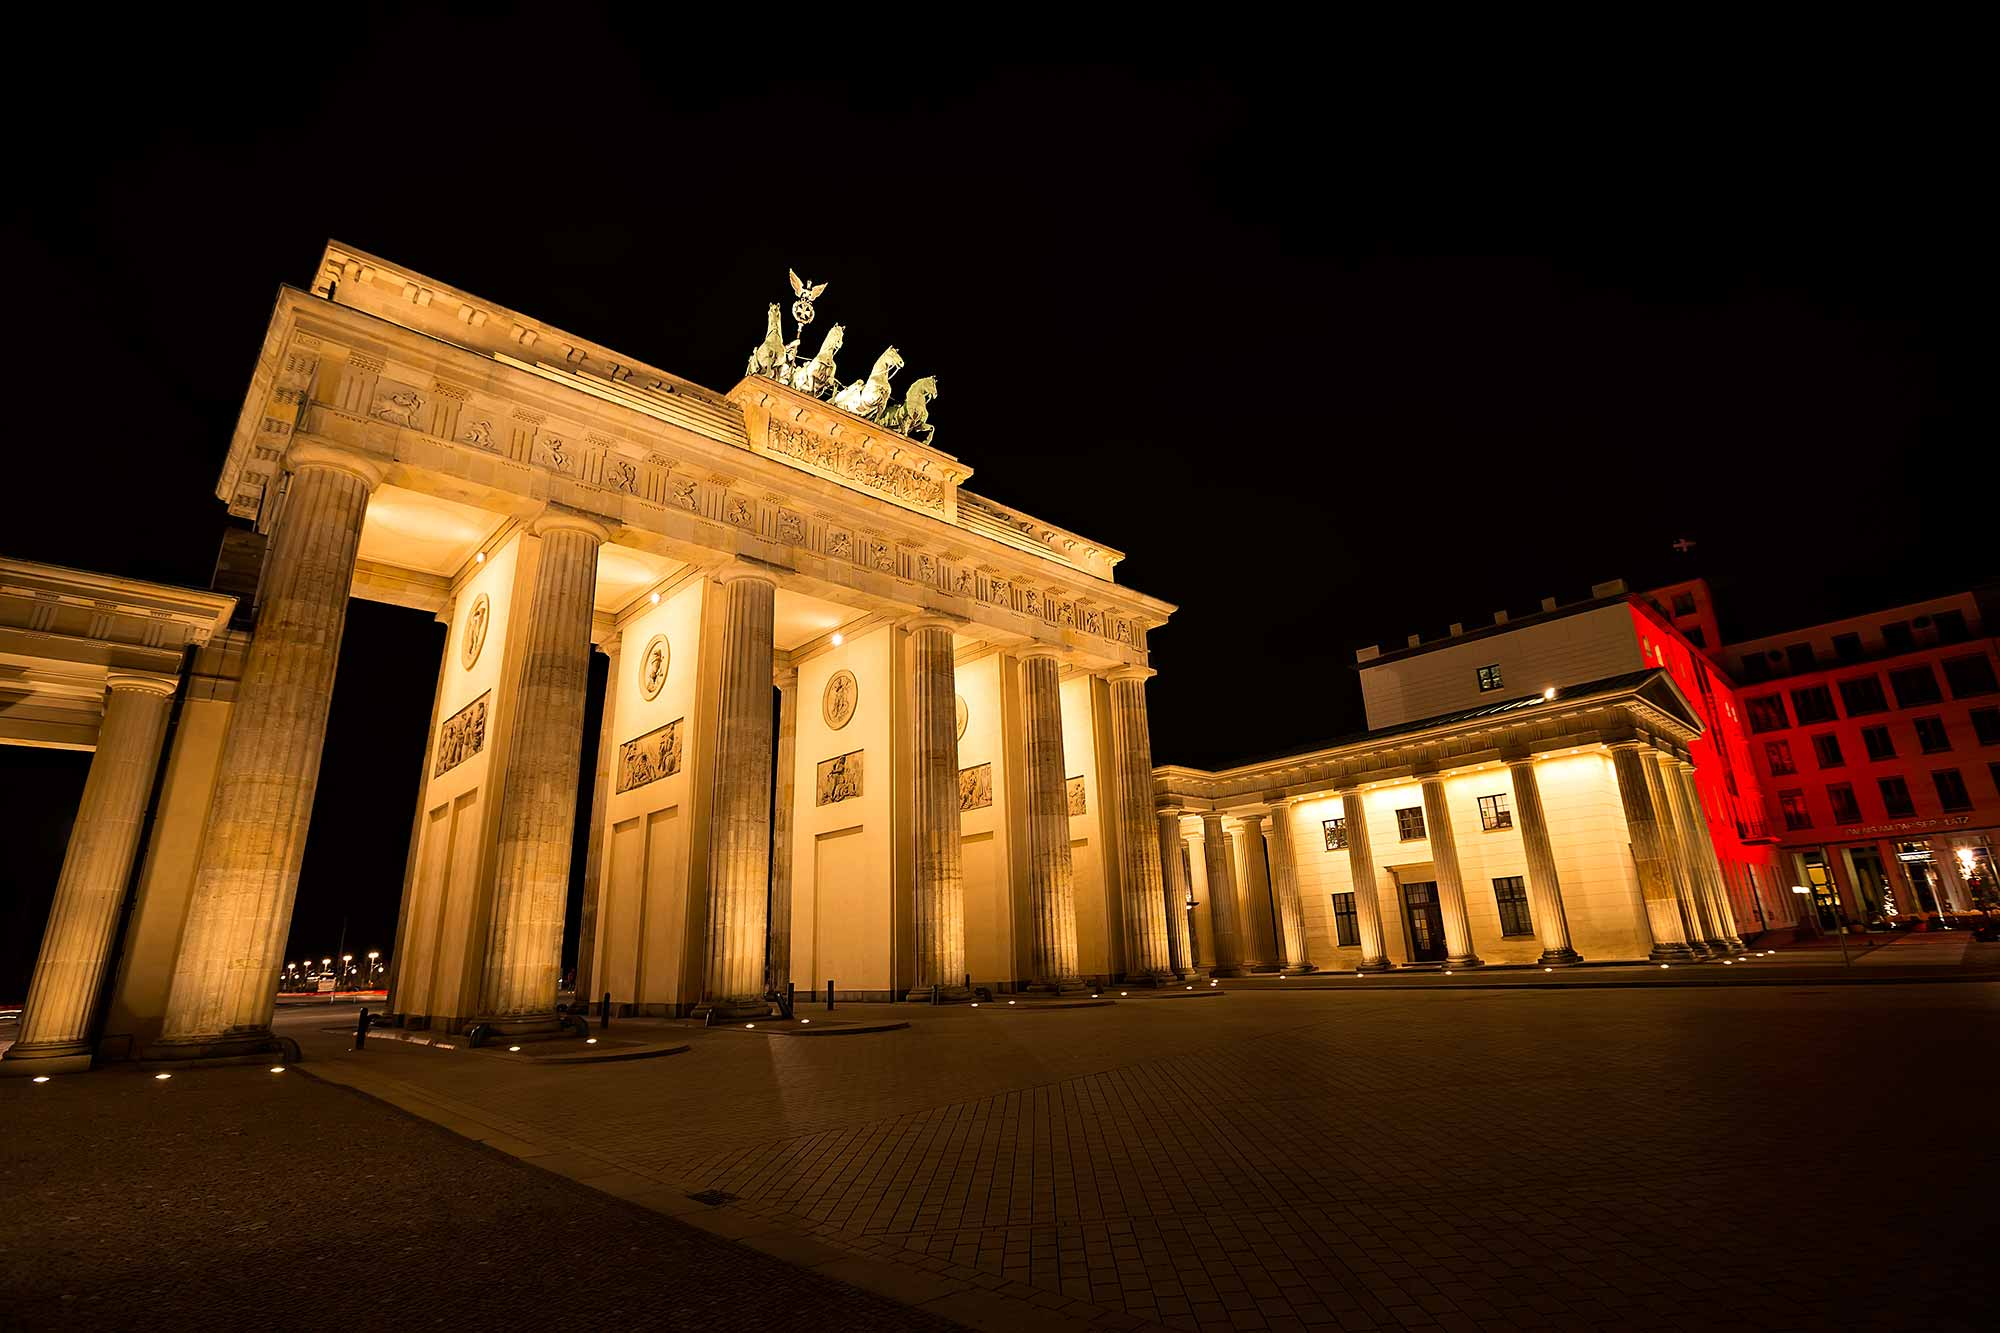 The Brandenburger Gate in Berlin. © Ulli Maier & Nisa Maier